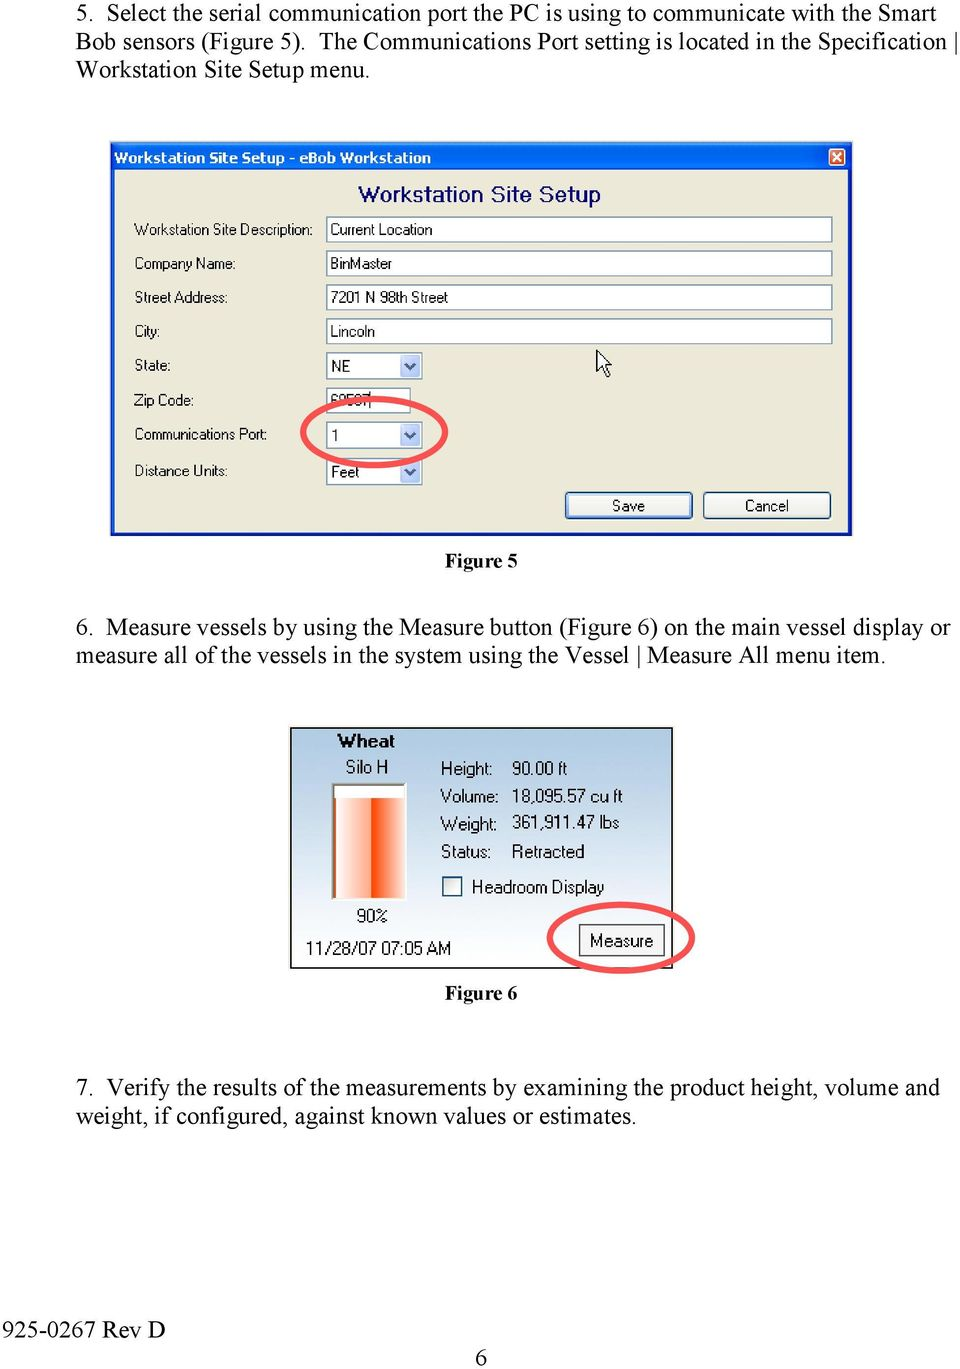 Measure vessels by using the Measure button (Figure 6) on the main vessel display or measure all of the vessels in the system using